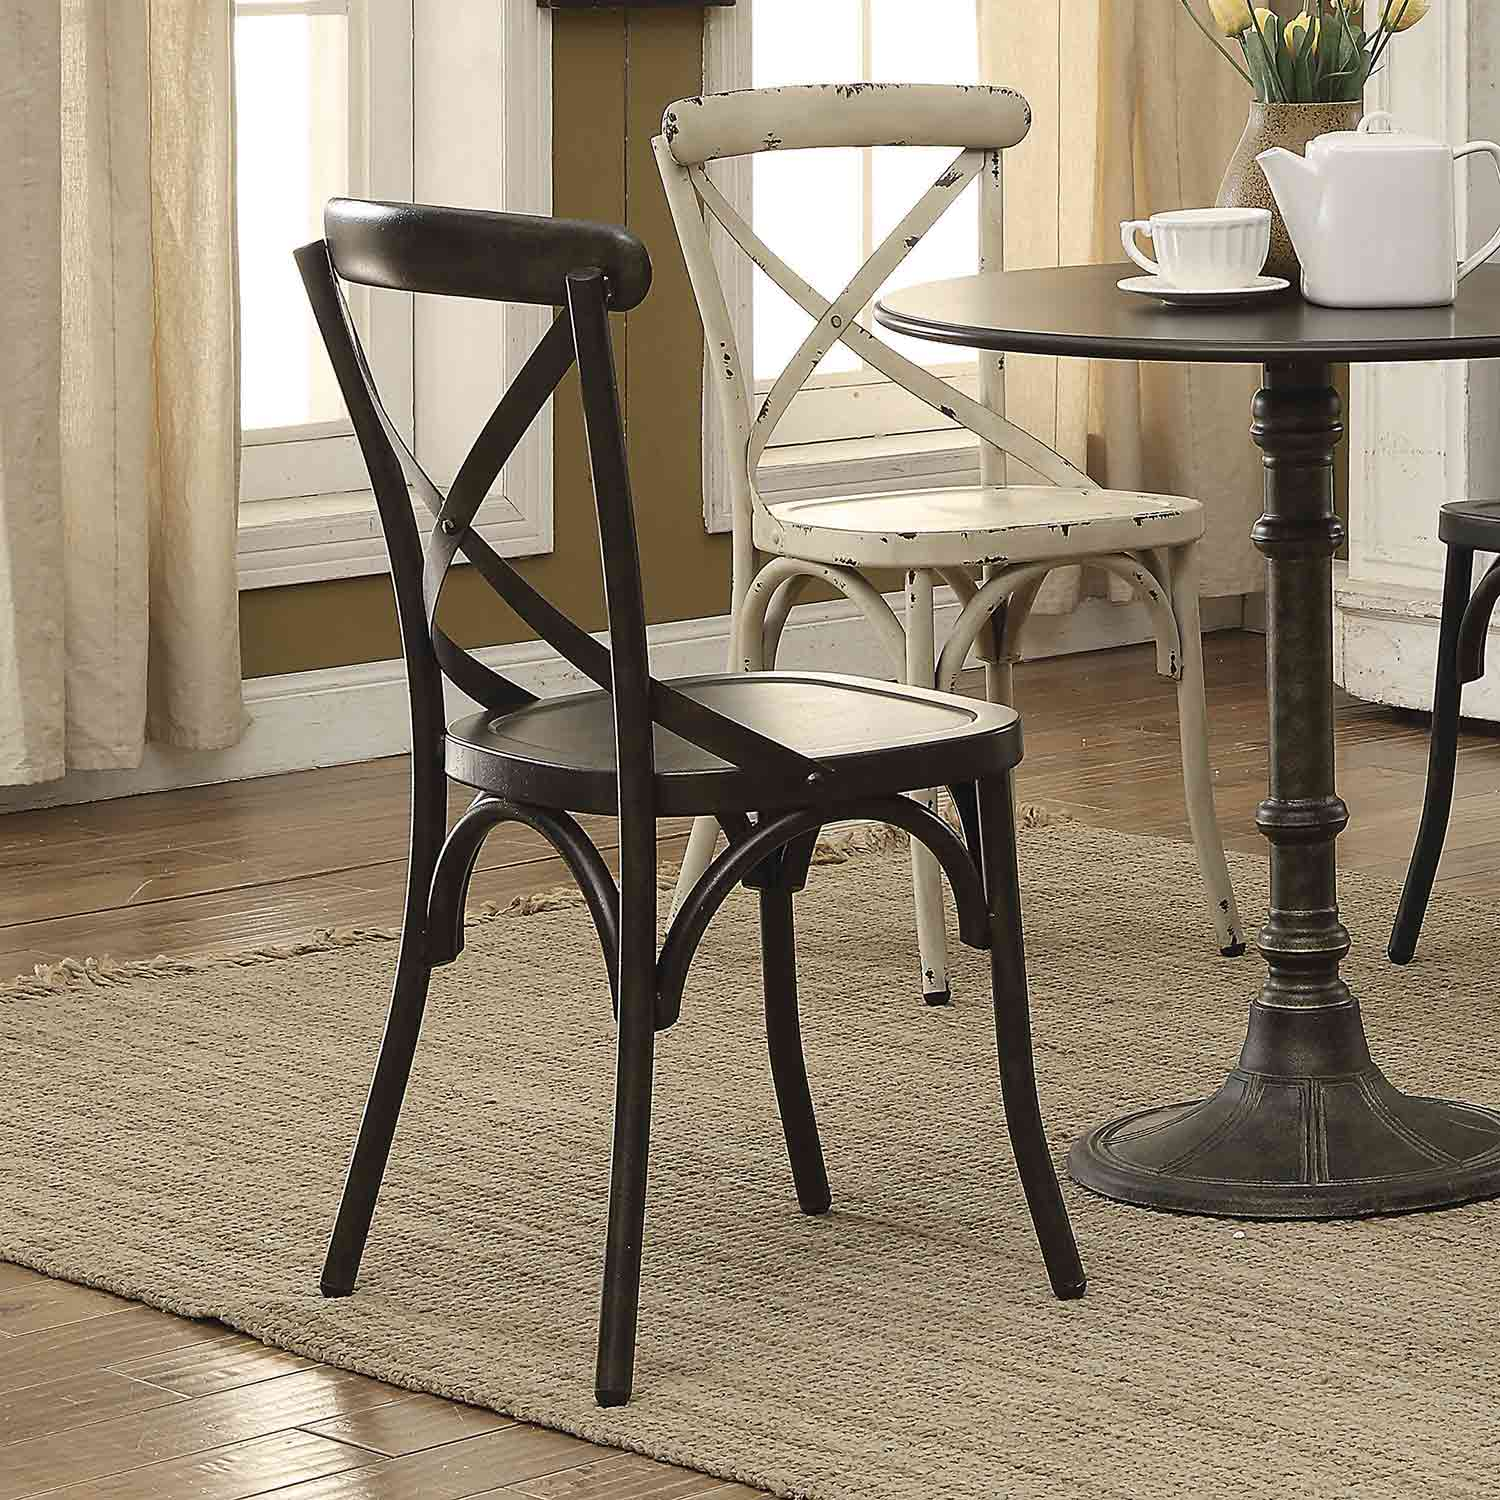 Coaster Nagel Dining Side Chair - Antique Brown